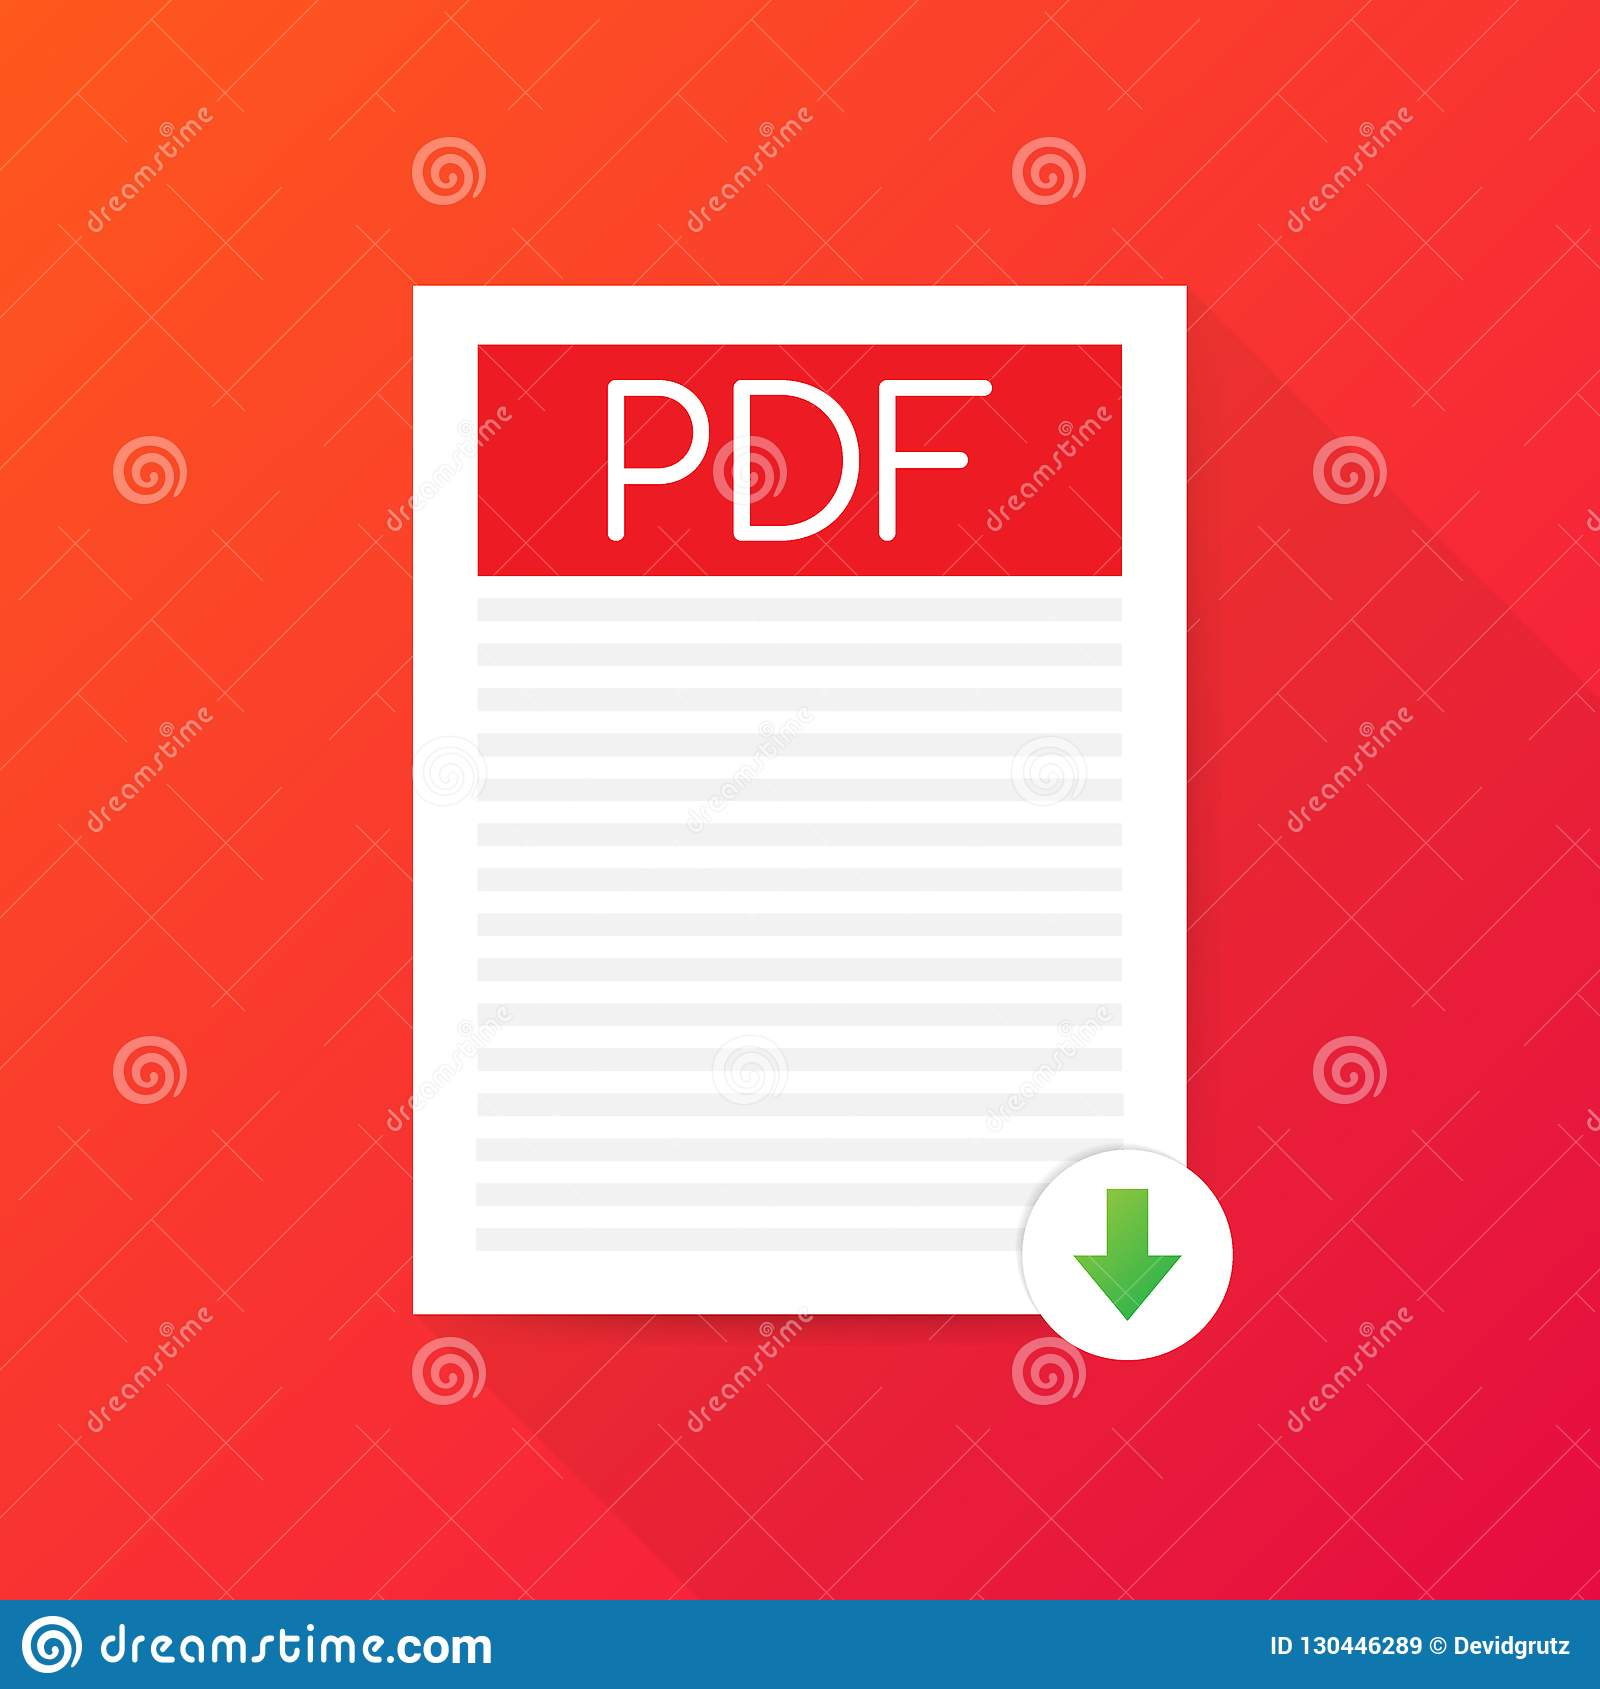 Pdf download icon simple flat pictogram for vector image.